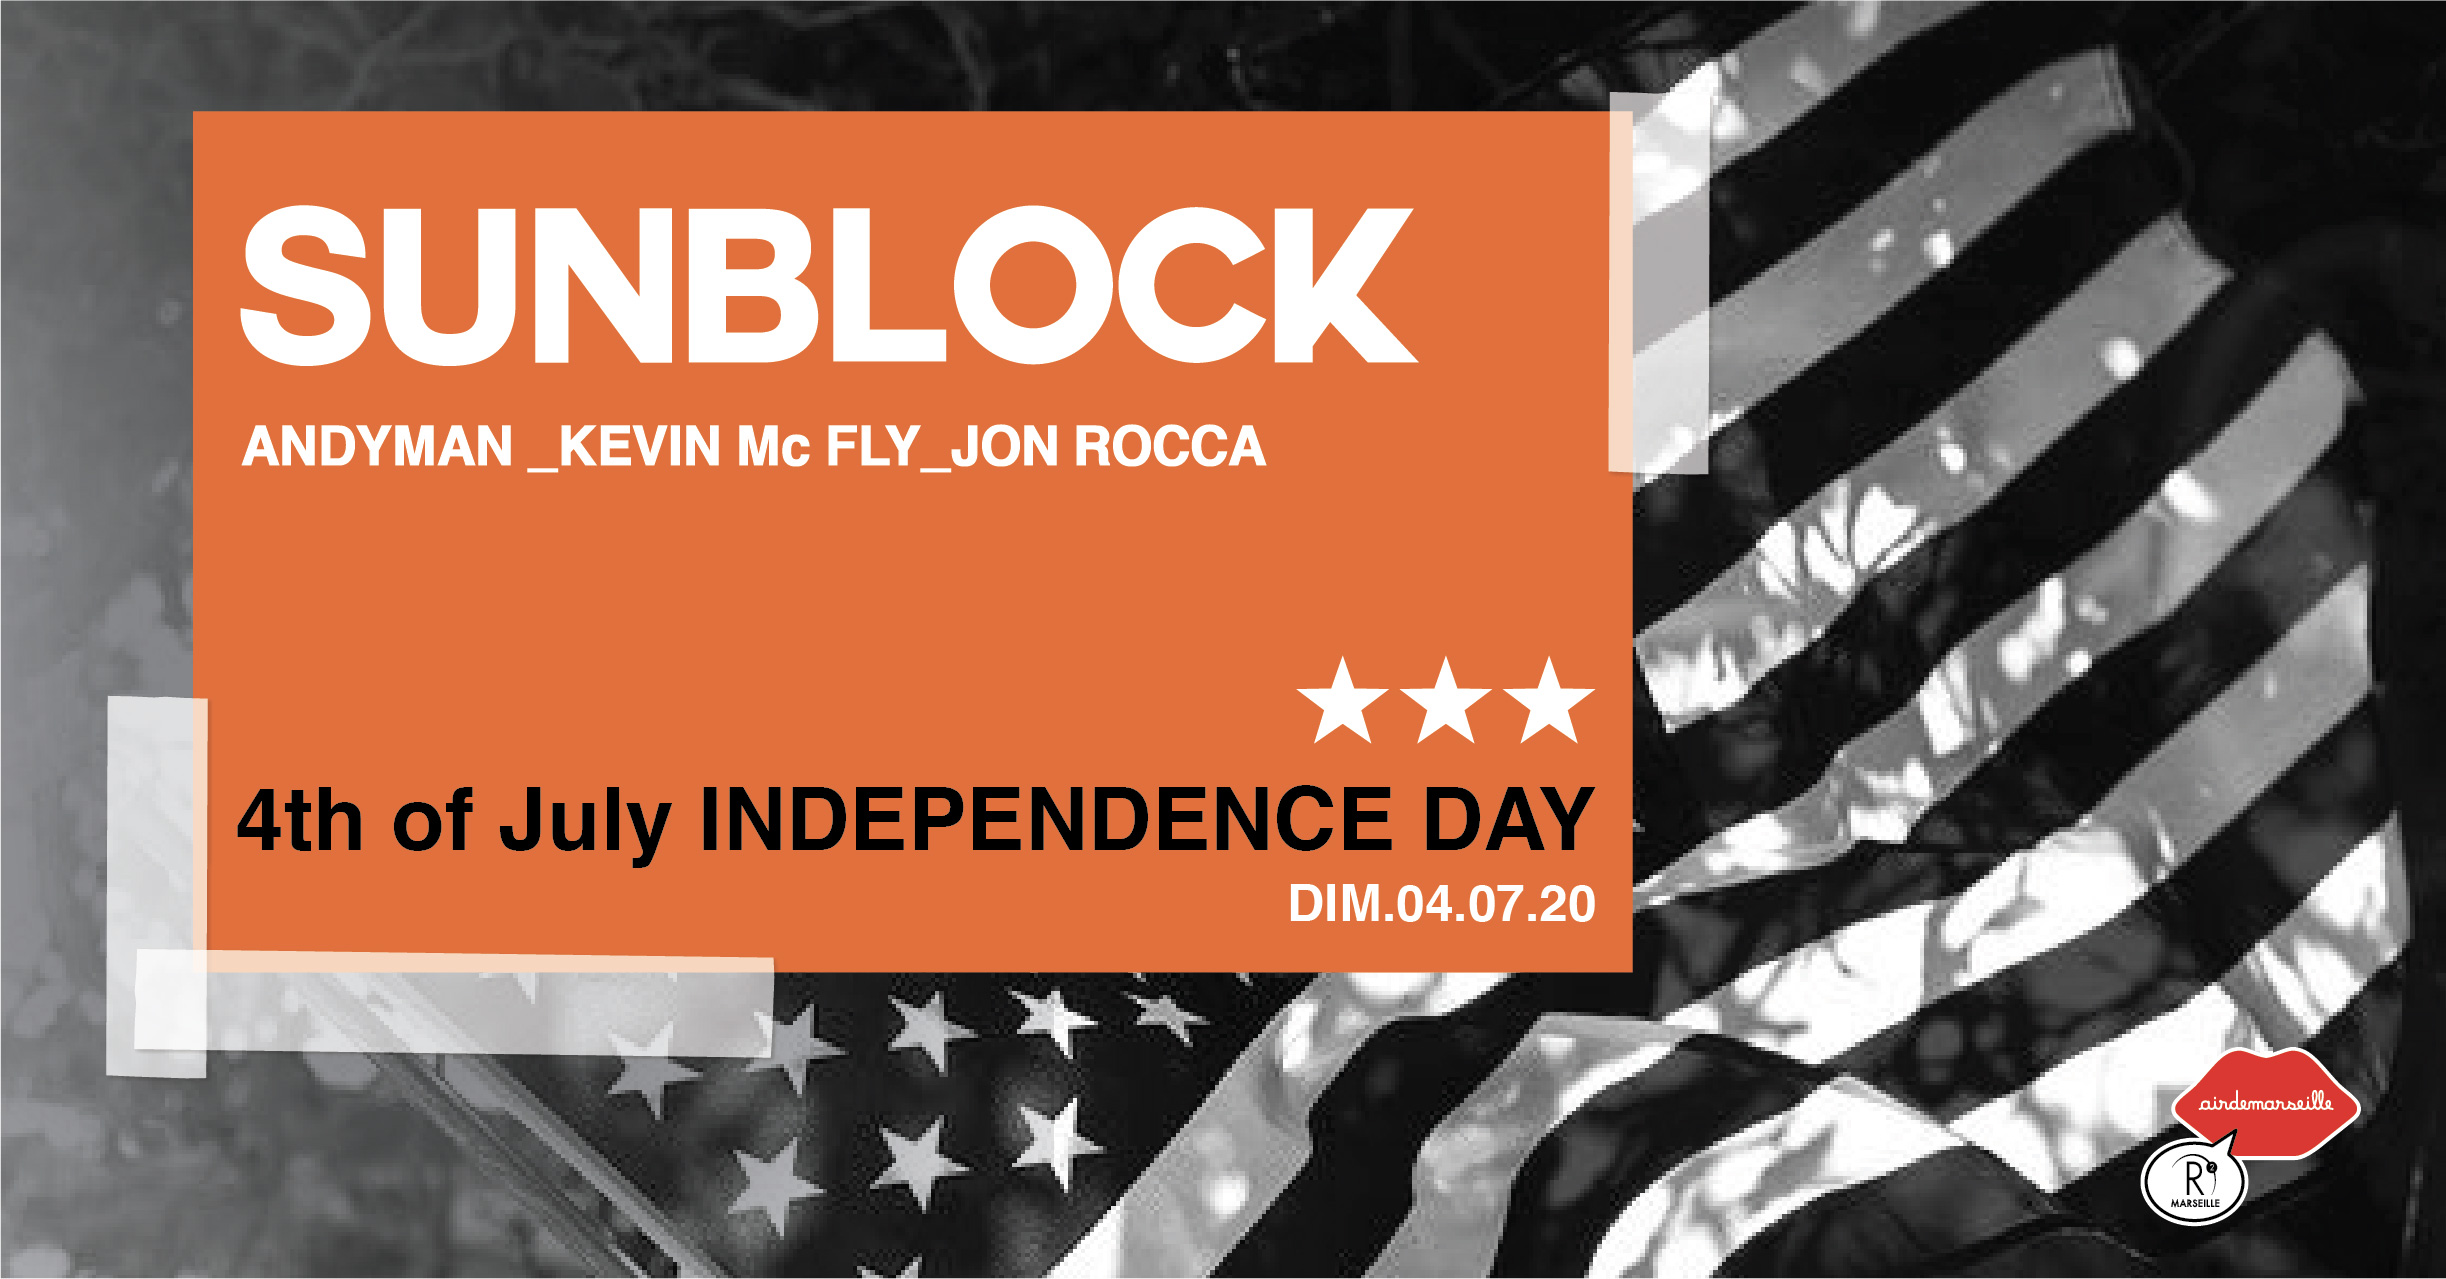 R2 ROOFTOP - OPENING SUNBLOCK - INDEPENDANCE DAY - HIP-HOP